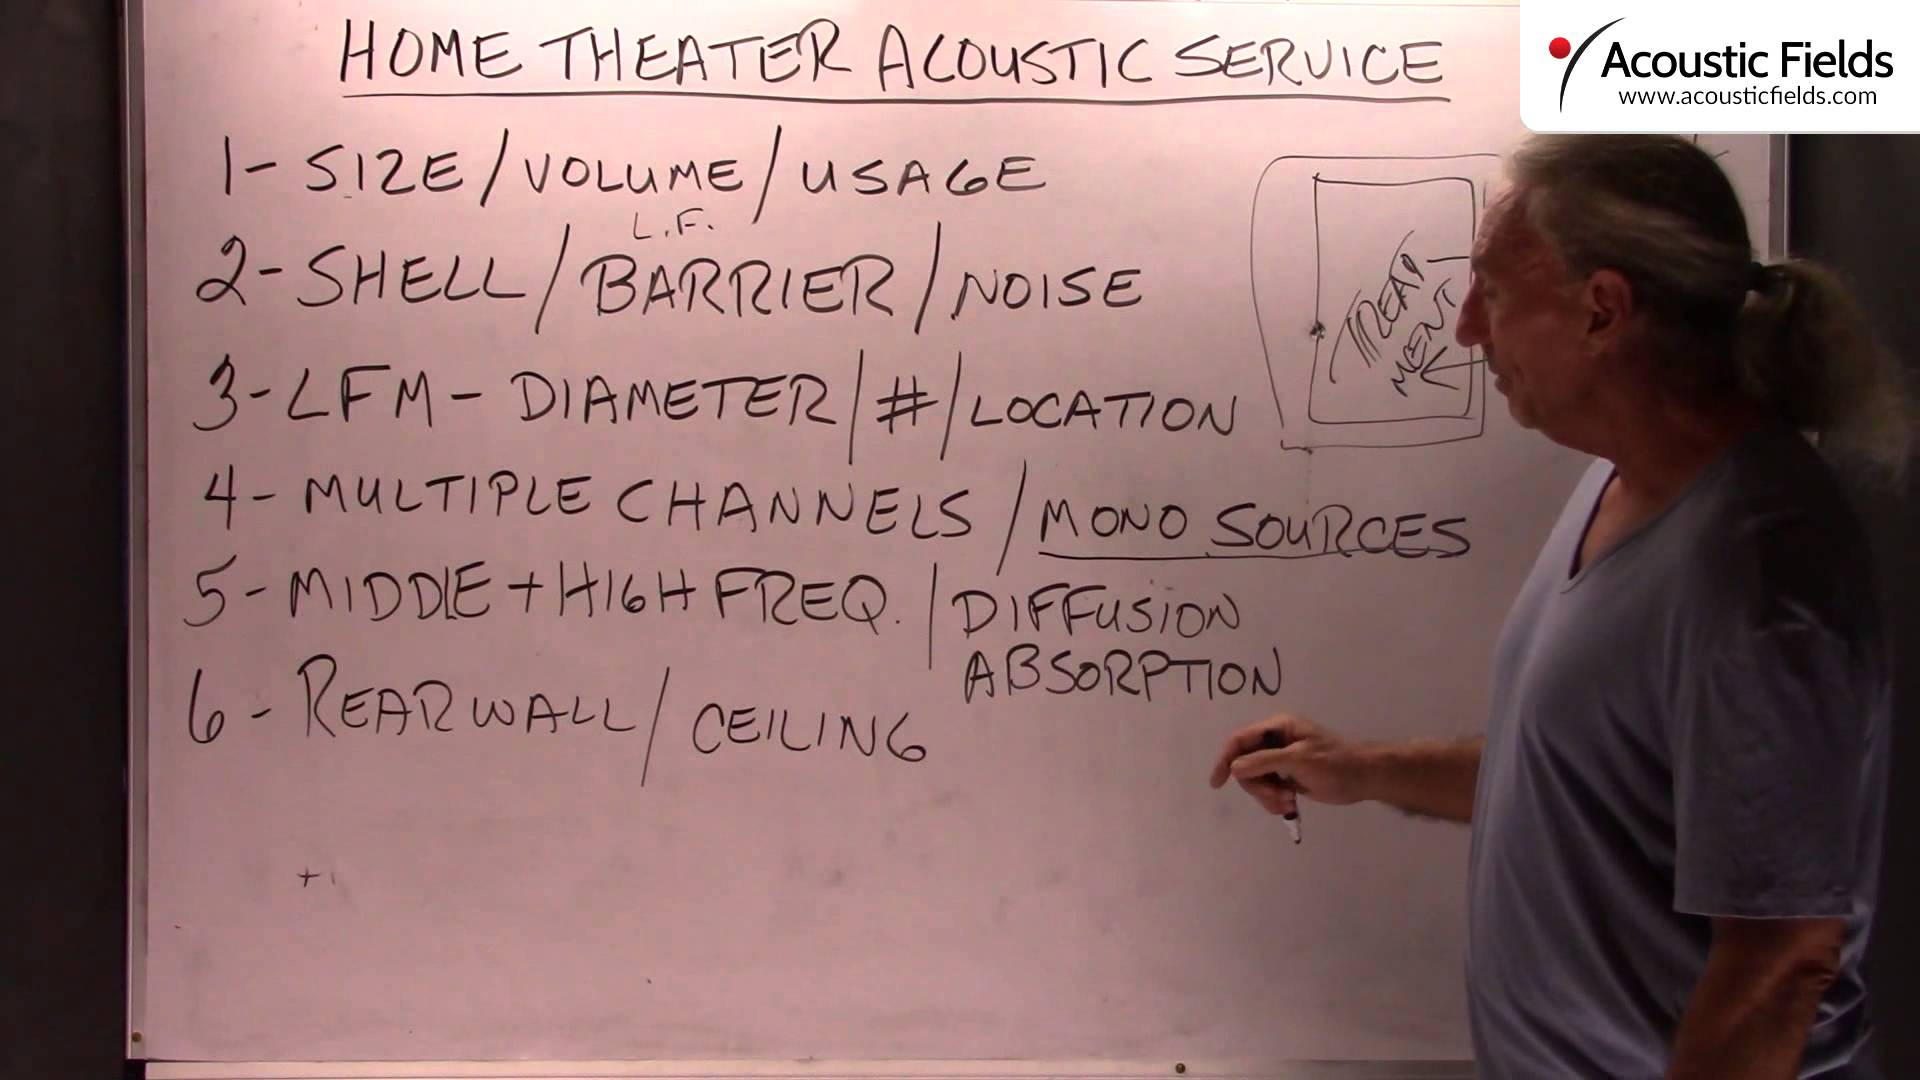 Home Theater Acoustic Service